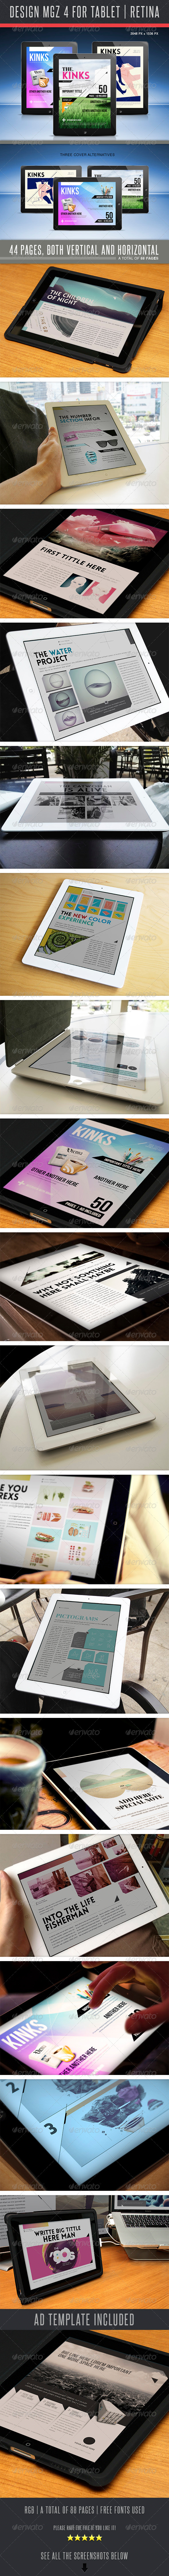 GraphicRiver Design MGZ 4 For Tablet 5039013